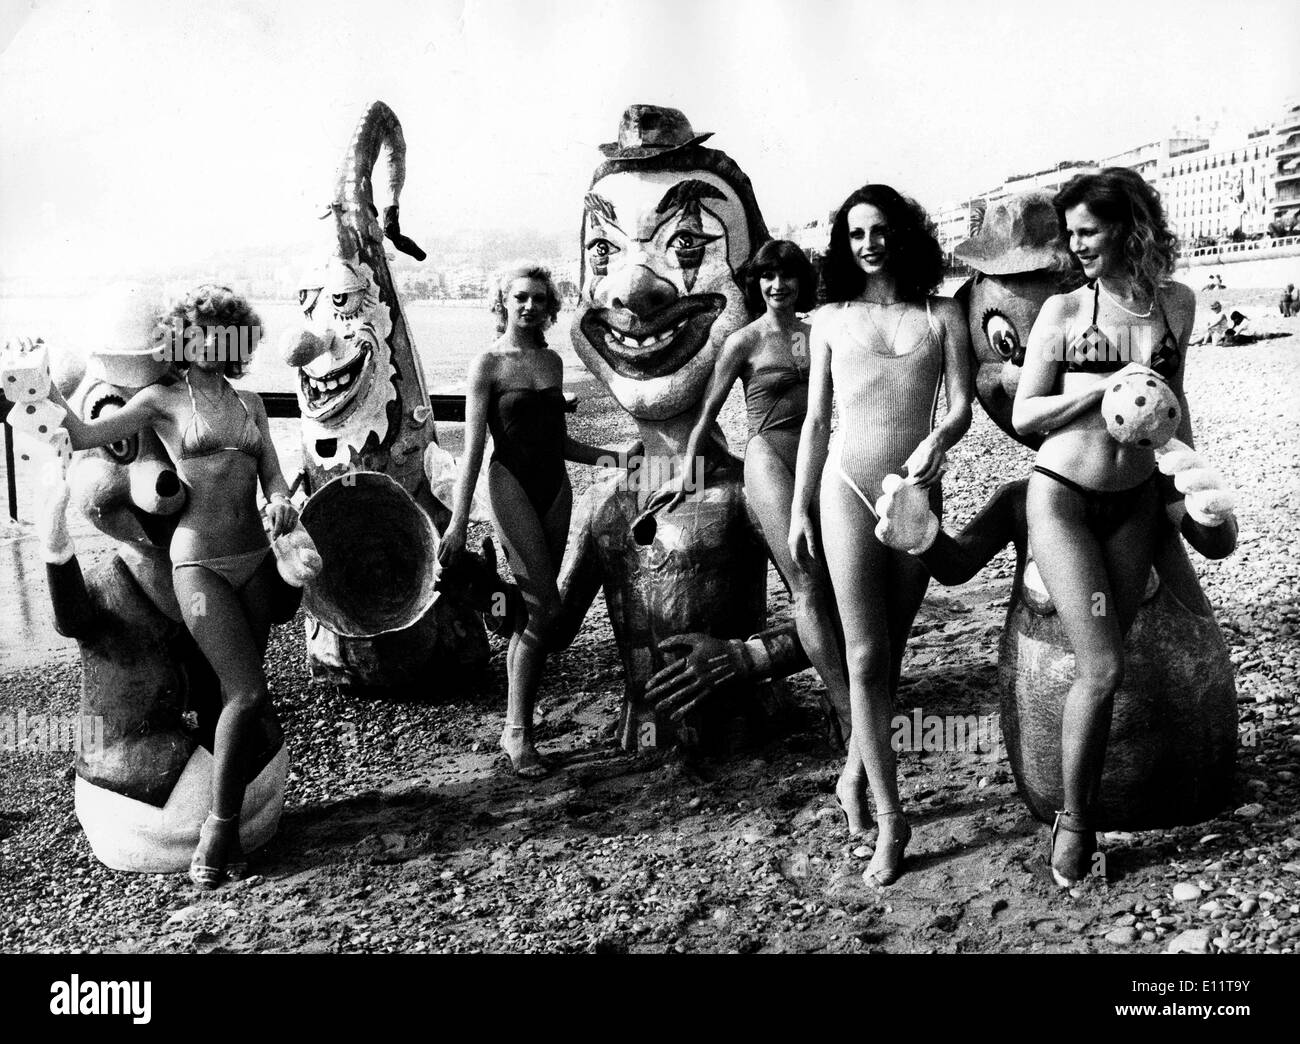 Feb 15, 1980; Nice, FRANCE; Carnival in the Sun: French models wearing  bathing suits at the French Riviera during the French carnival celebrations.